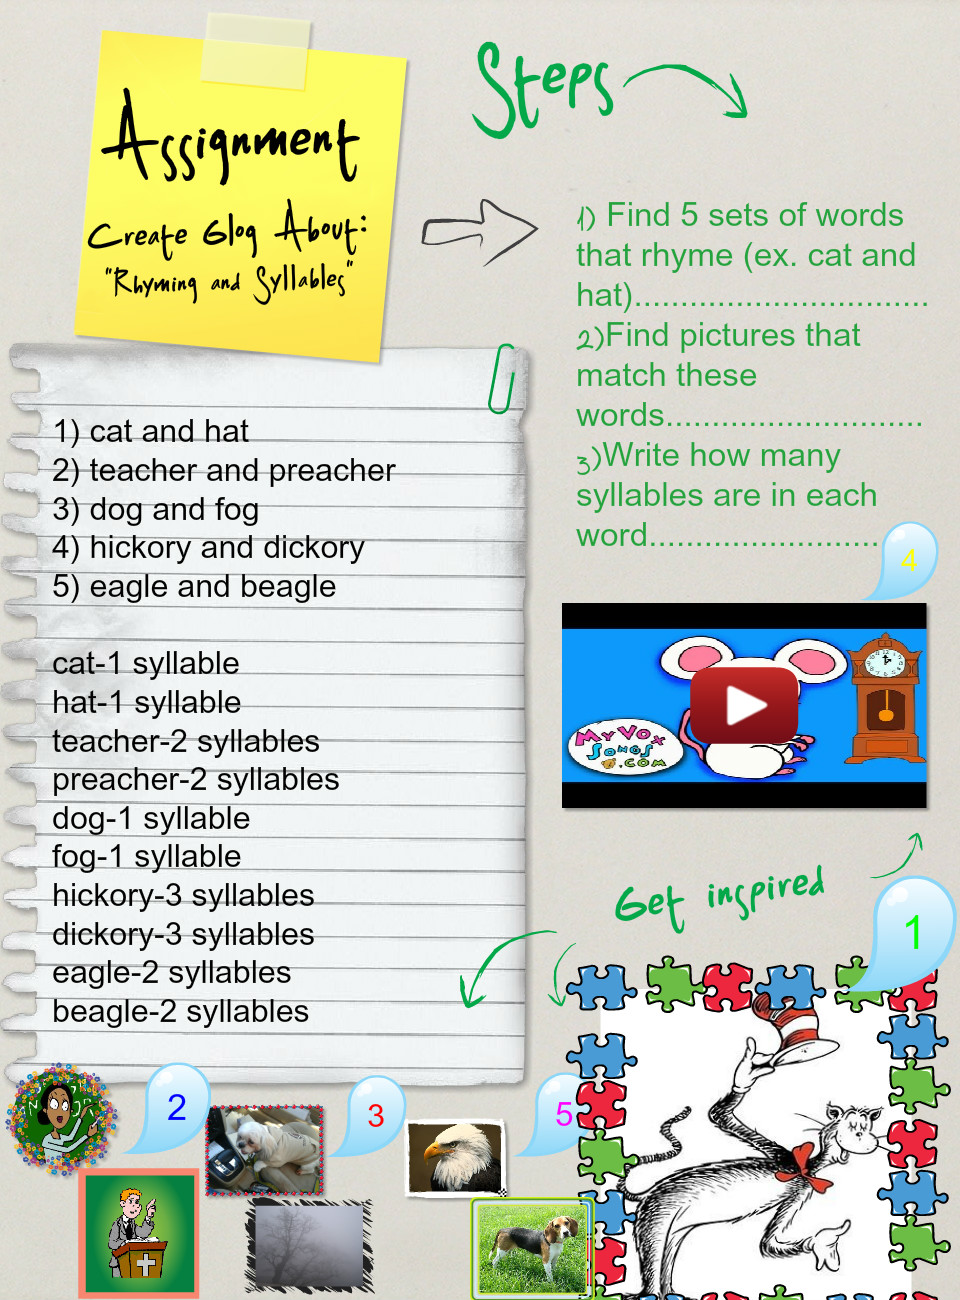 Rhyming and Syllables (Assignment), Grammar: rhymes, syllables | Glogster  EDU - Interactive multimedia posters